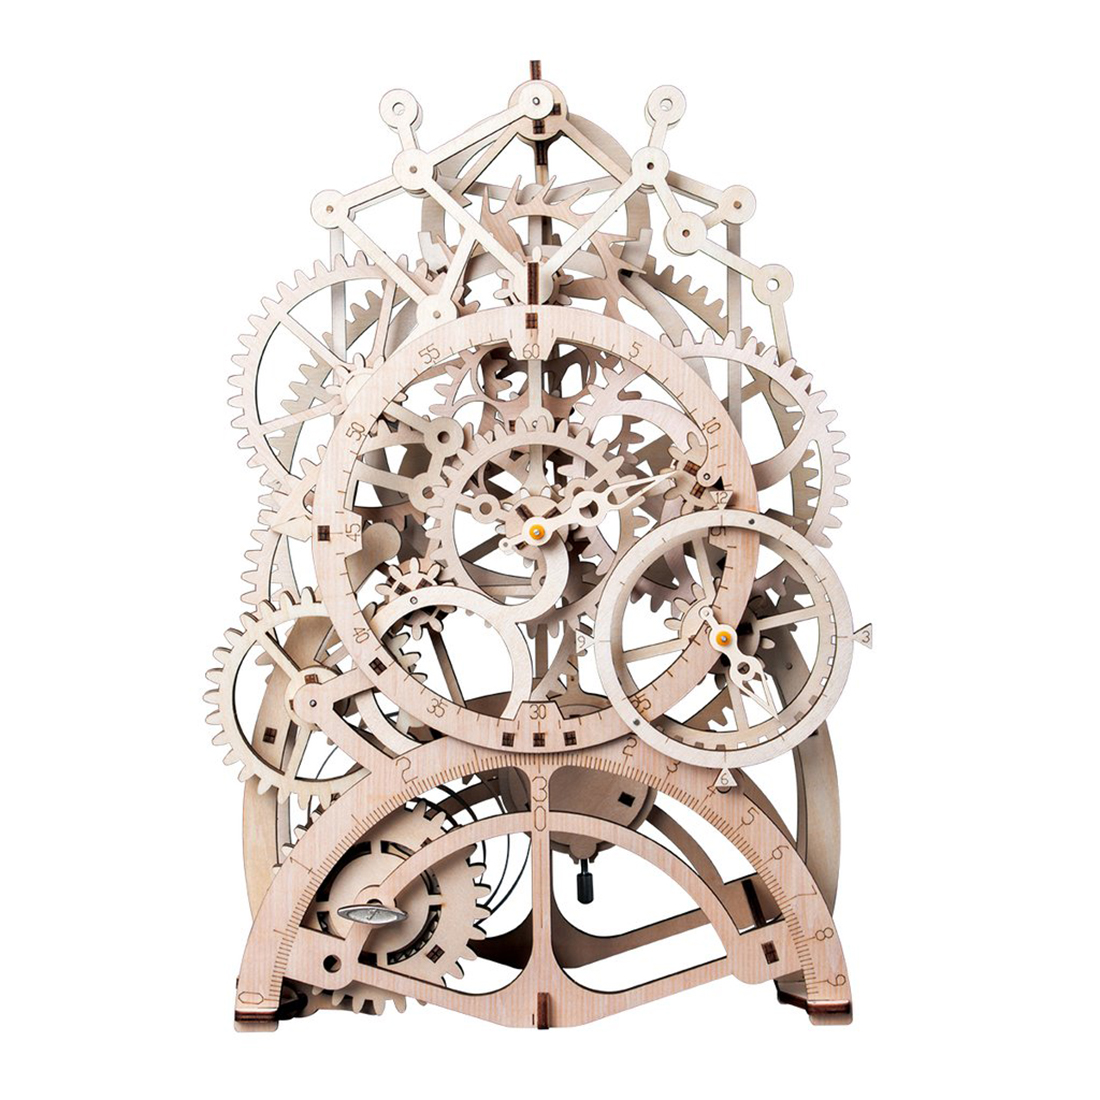 1pcs Stem Assembly Toy For Kids 3D DIY Puzzle Movement Assembled Wooden Pendulum Clock  Gifts 2020 New Arrival